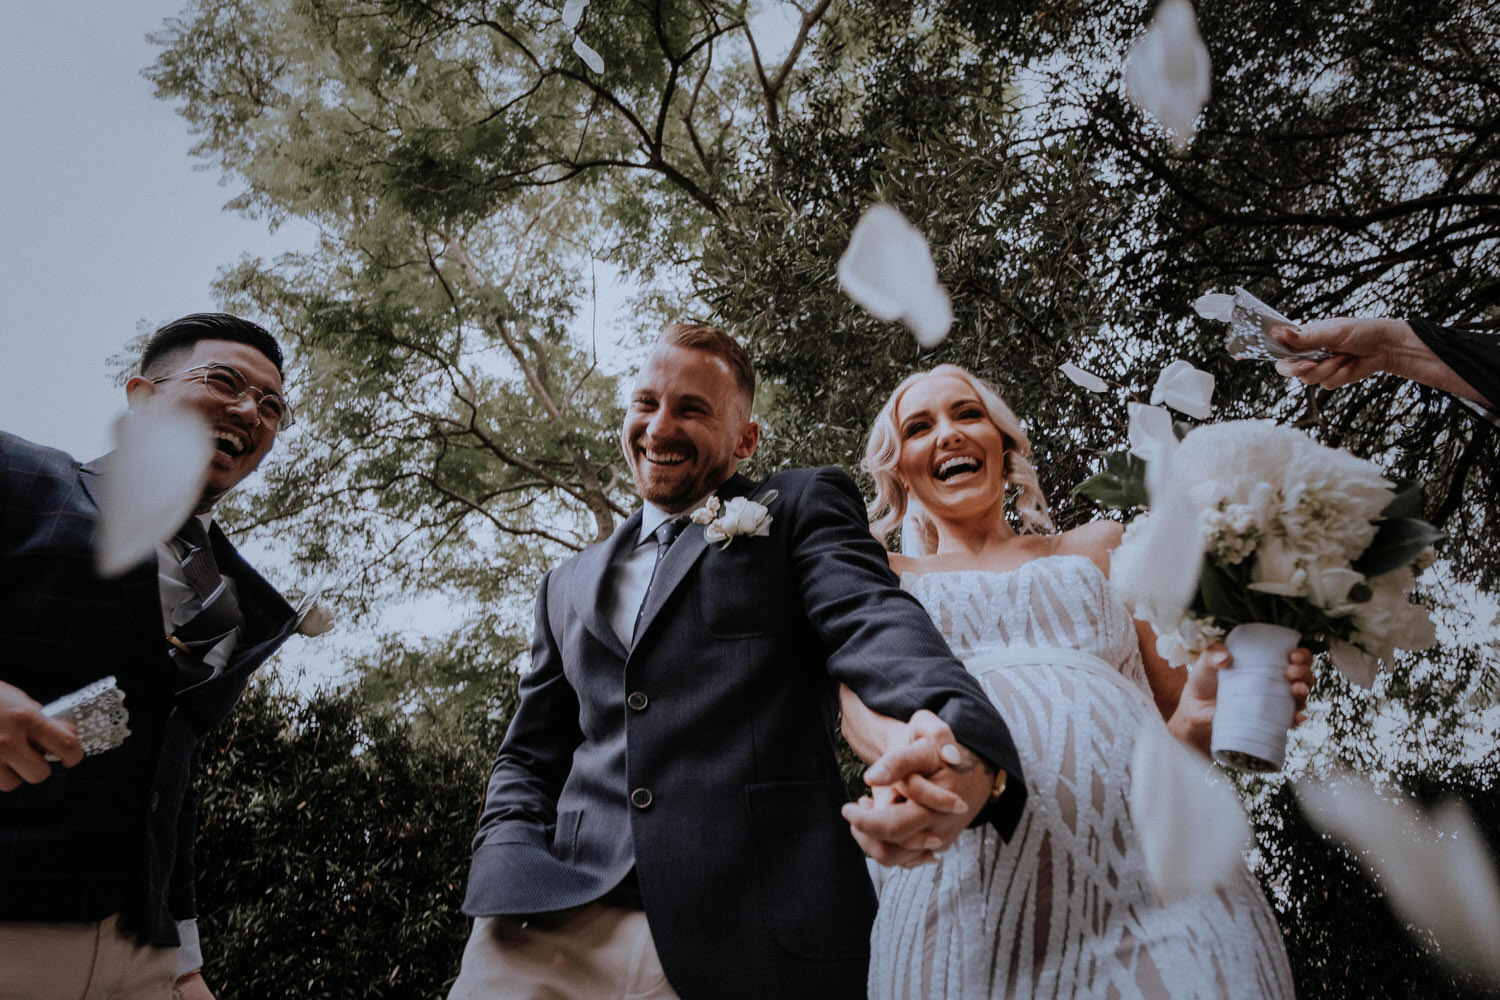 Kings & Thieves' Benjamin Urquhart wins a place in CaptureMag's Australia's Top Emerging Photographers. Award winning wedding photography by Benjamin Urquhart.